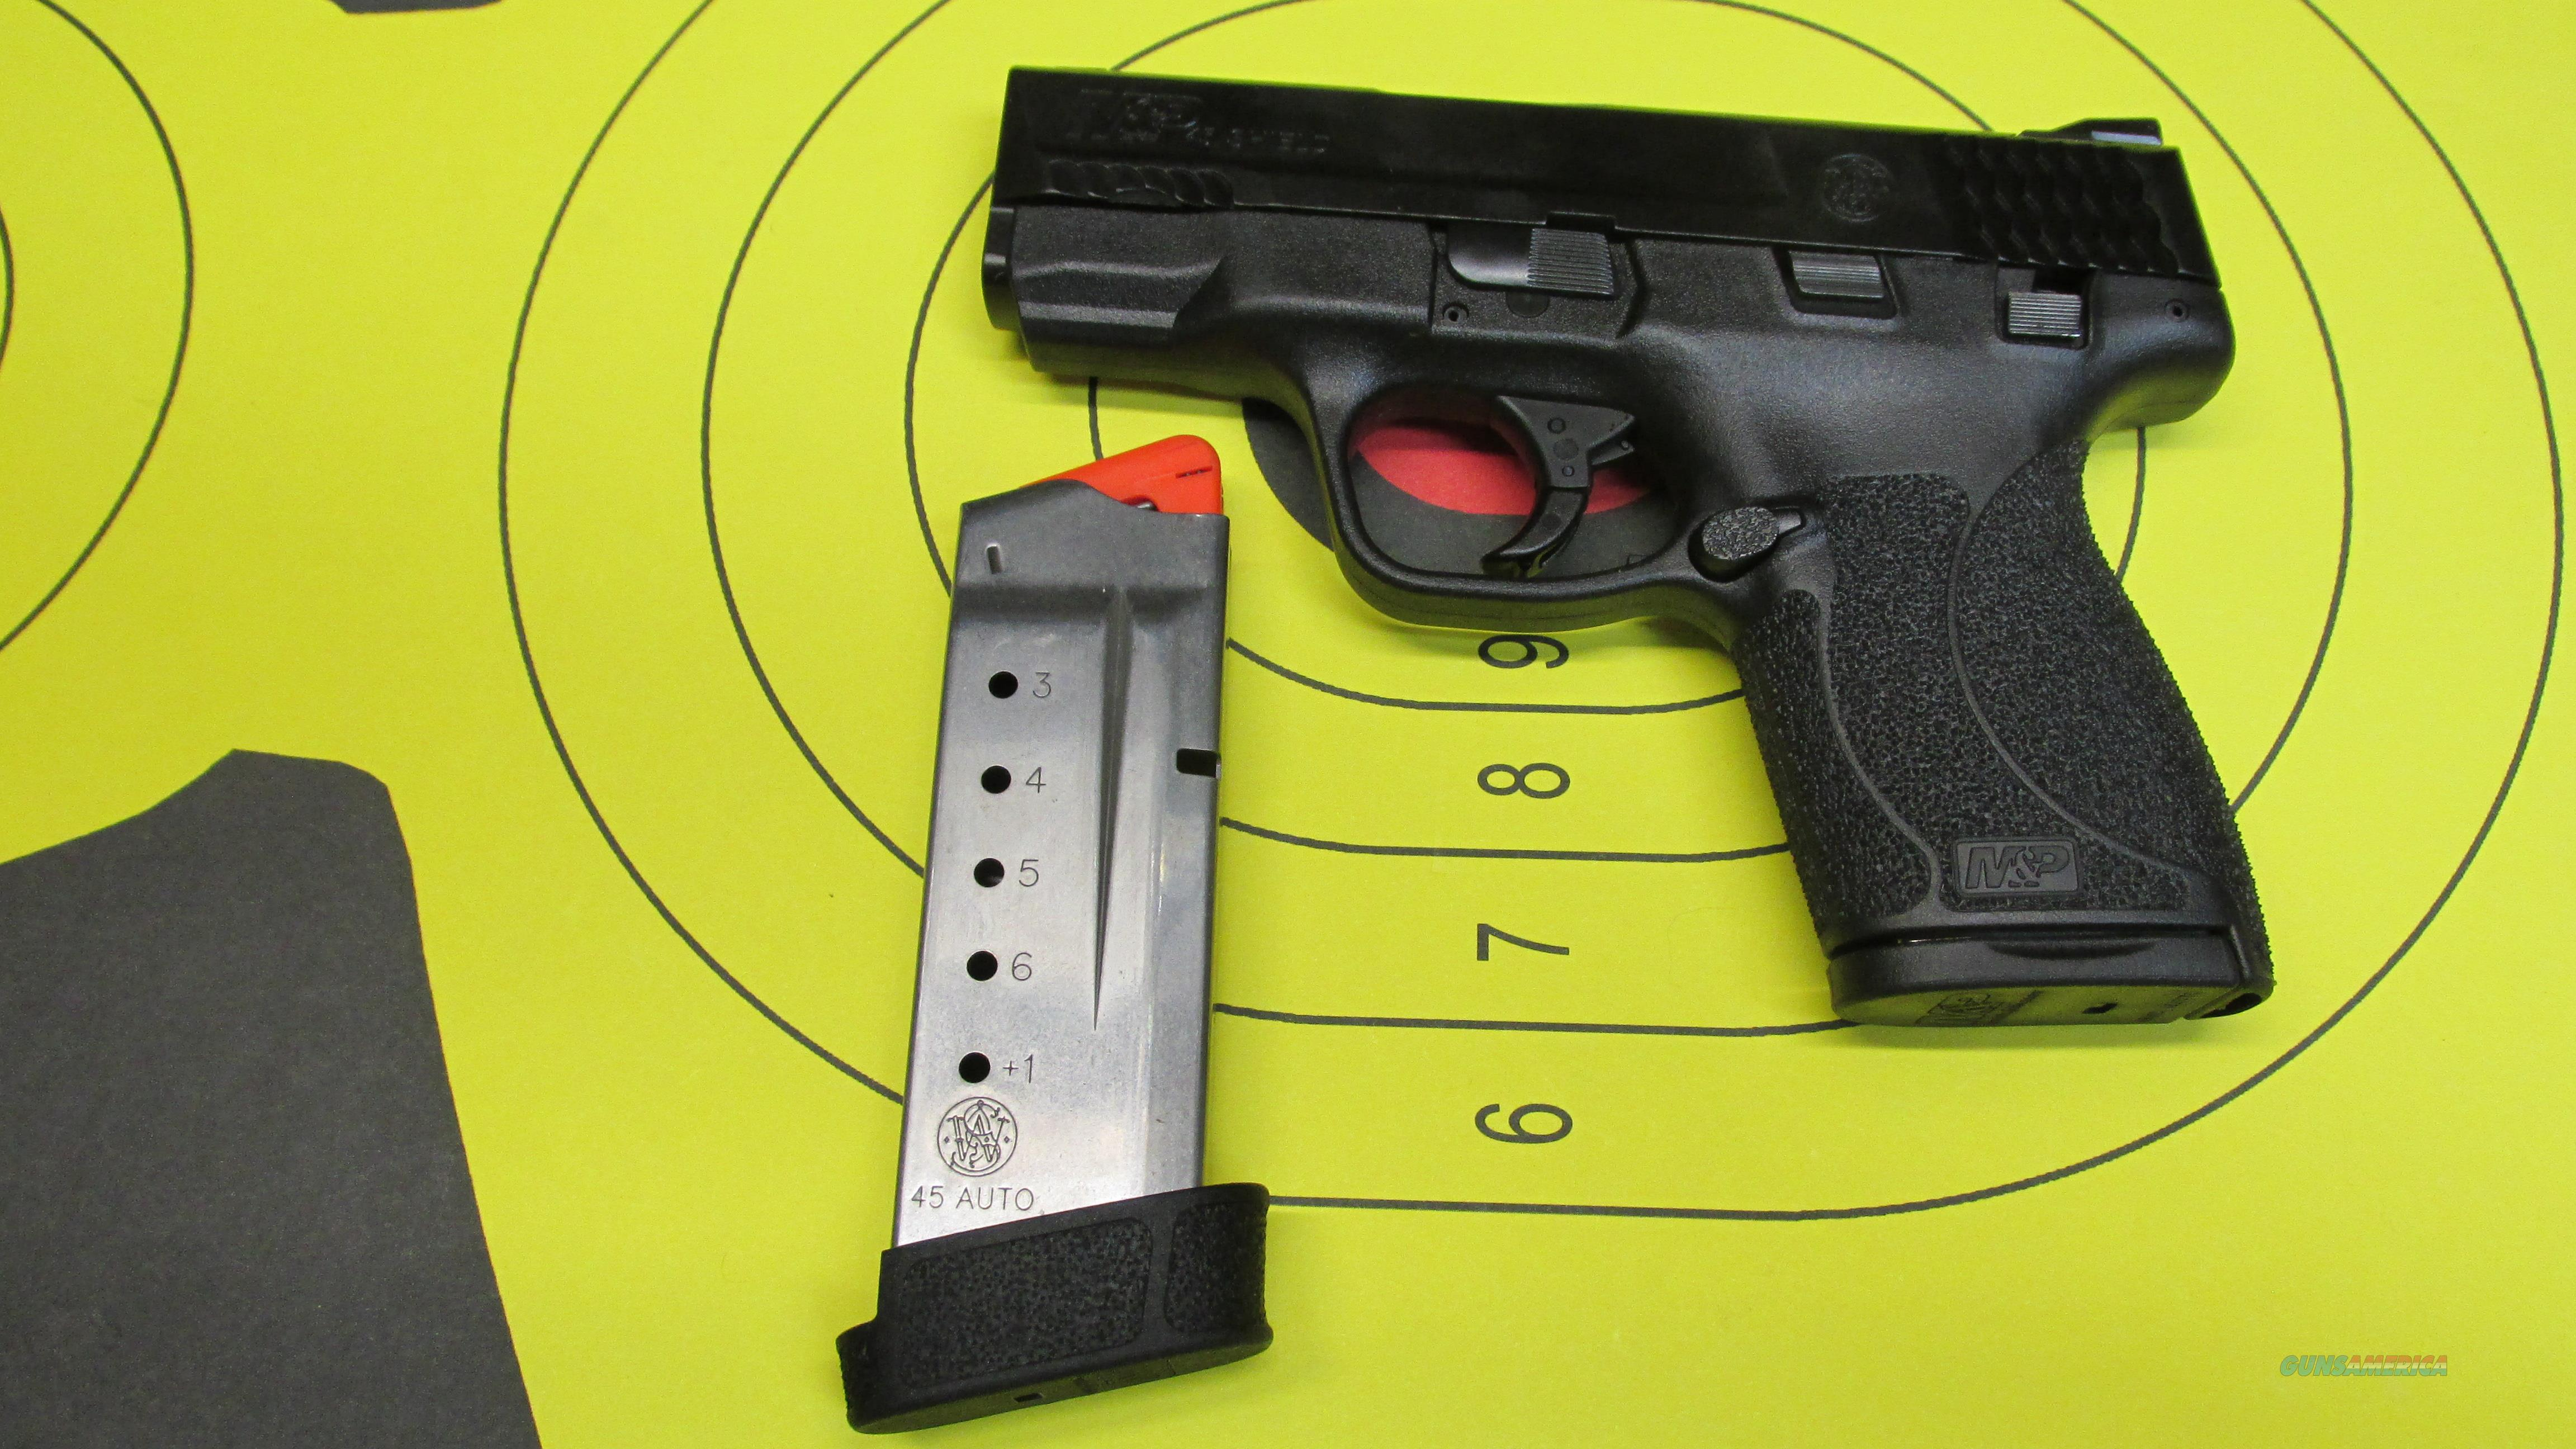 "SMITH &WESSON M&P45 SHIELD WITH THUMB SAFETY, .45ACP PISTOL, 6RD MAGAZINE, 7 RD MAGAZINE, 3.4"" BARREL  Guns > Pistols > Smith & Wesson Pistols - Autos > Shield"